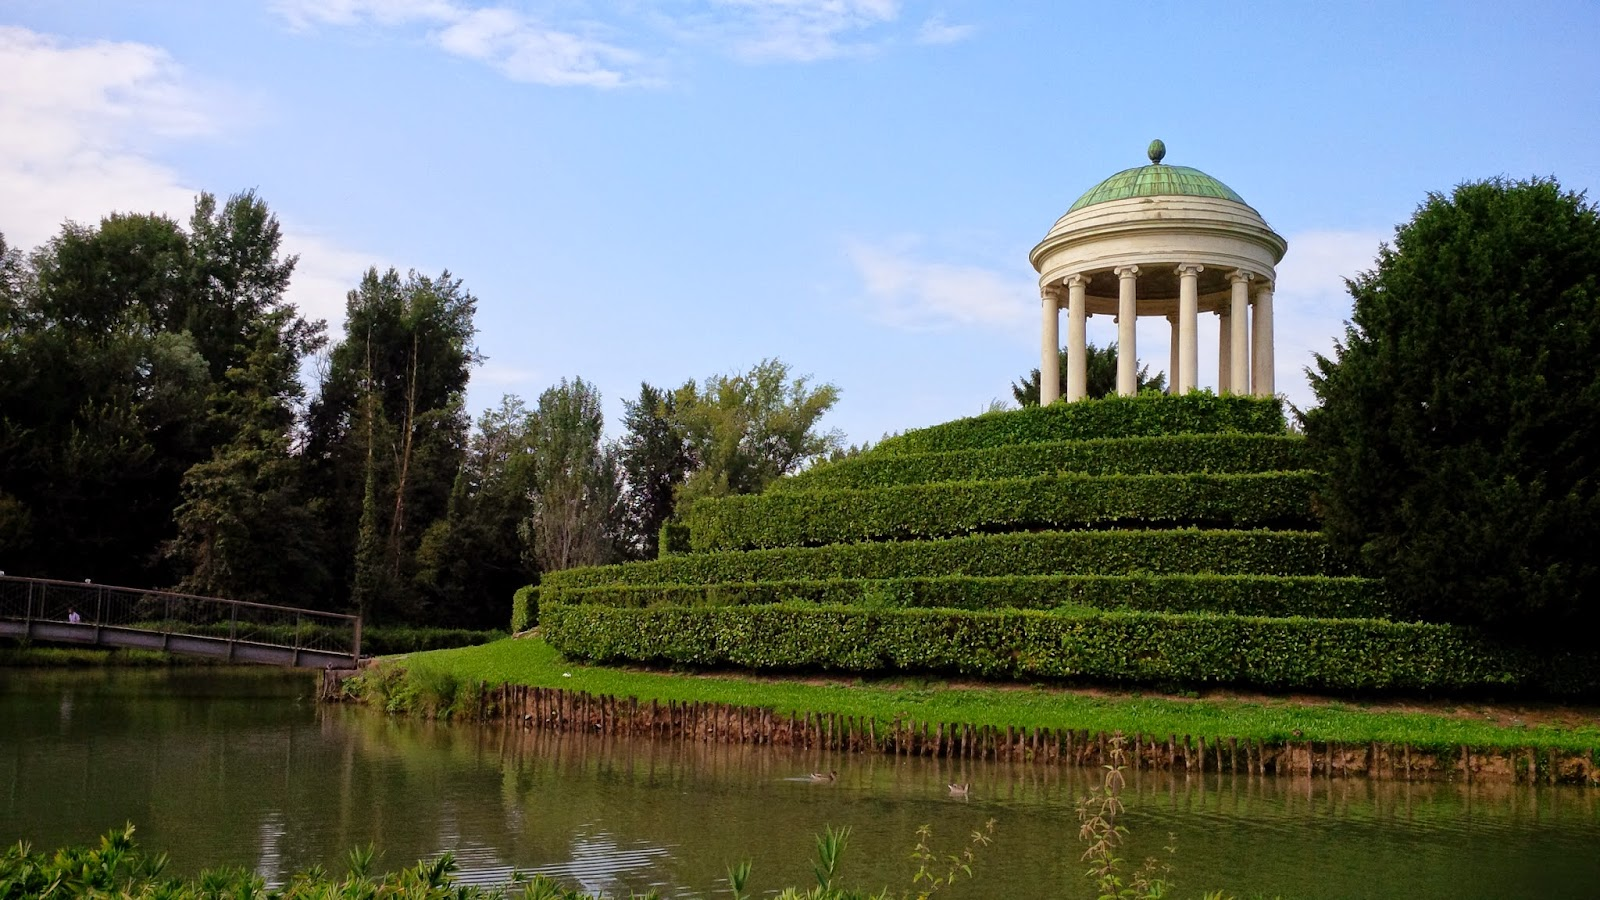 Parco Querini in Vicenza, Italy